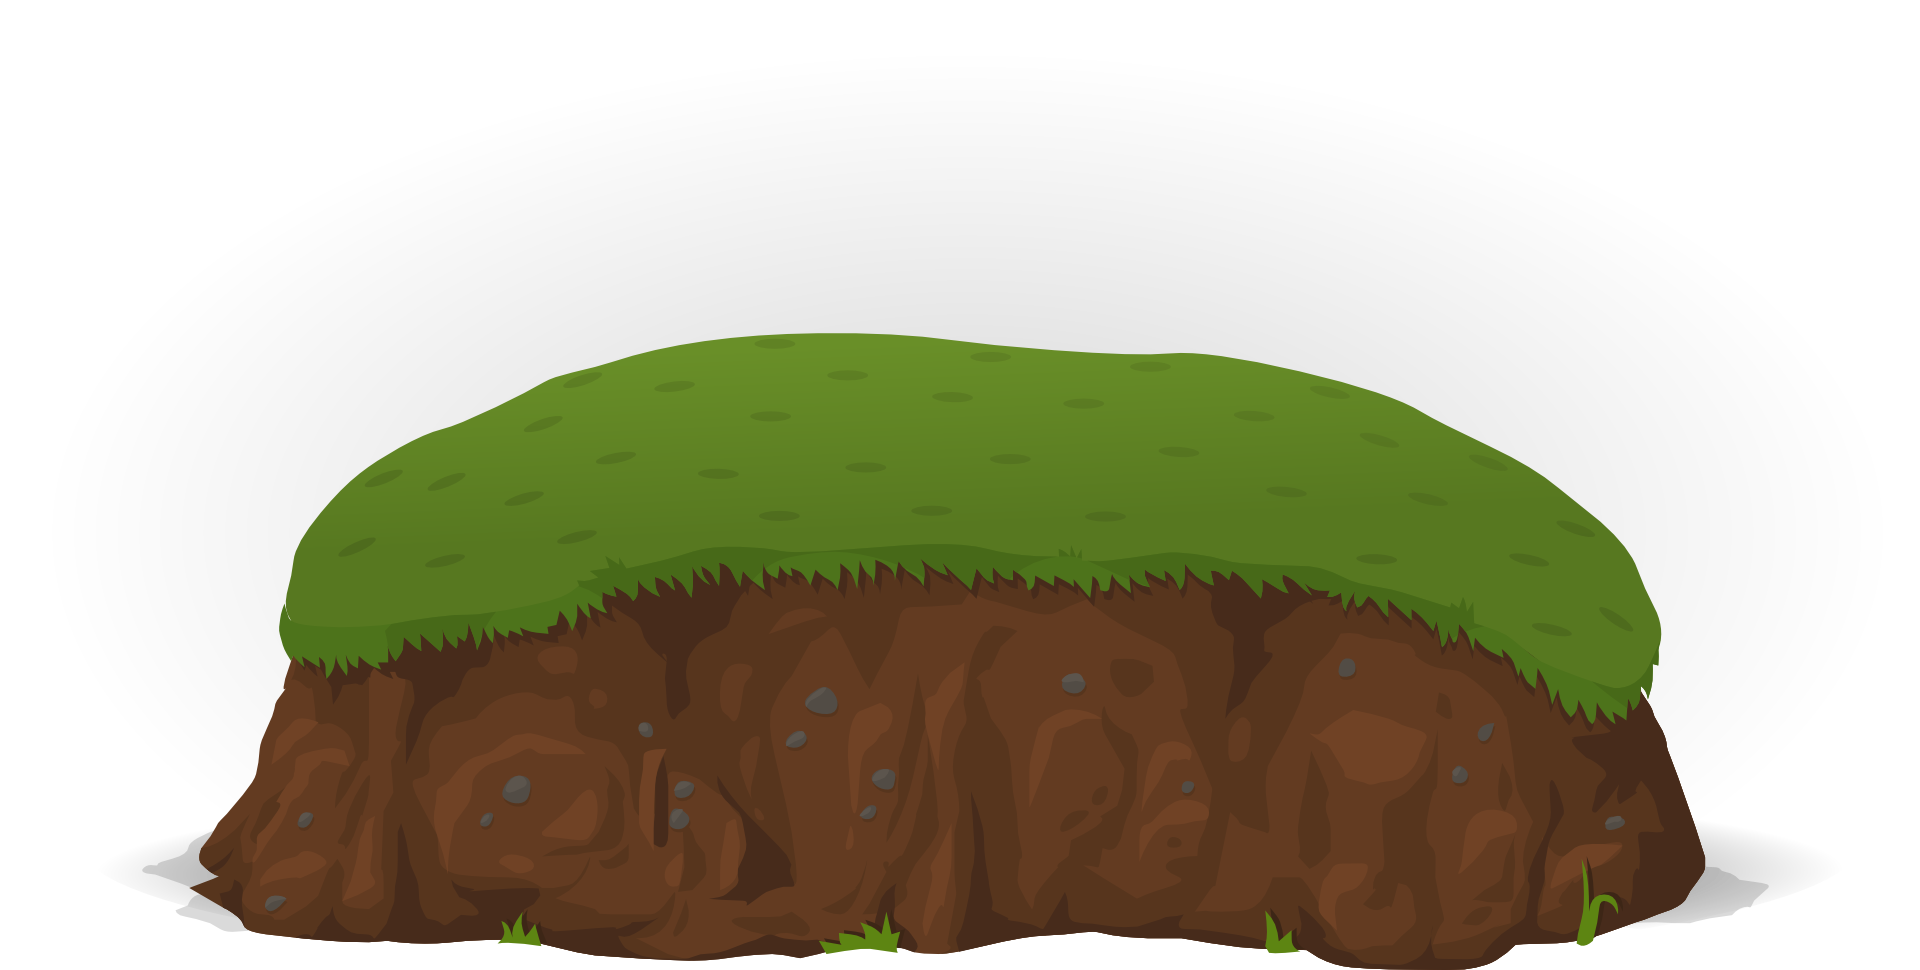 Hill clipart bush. Graphic drawing of a